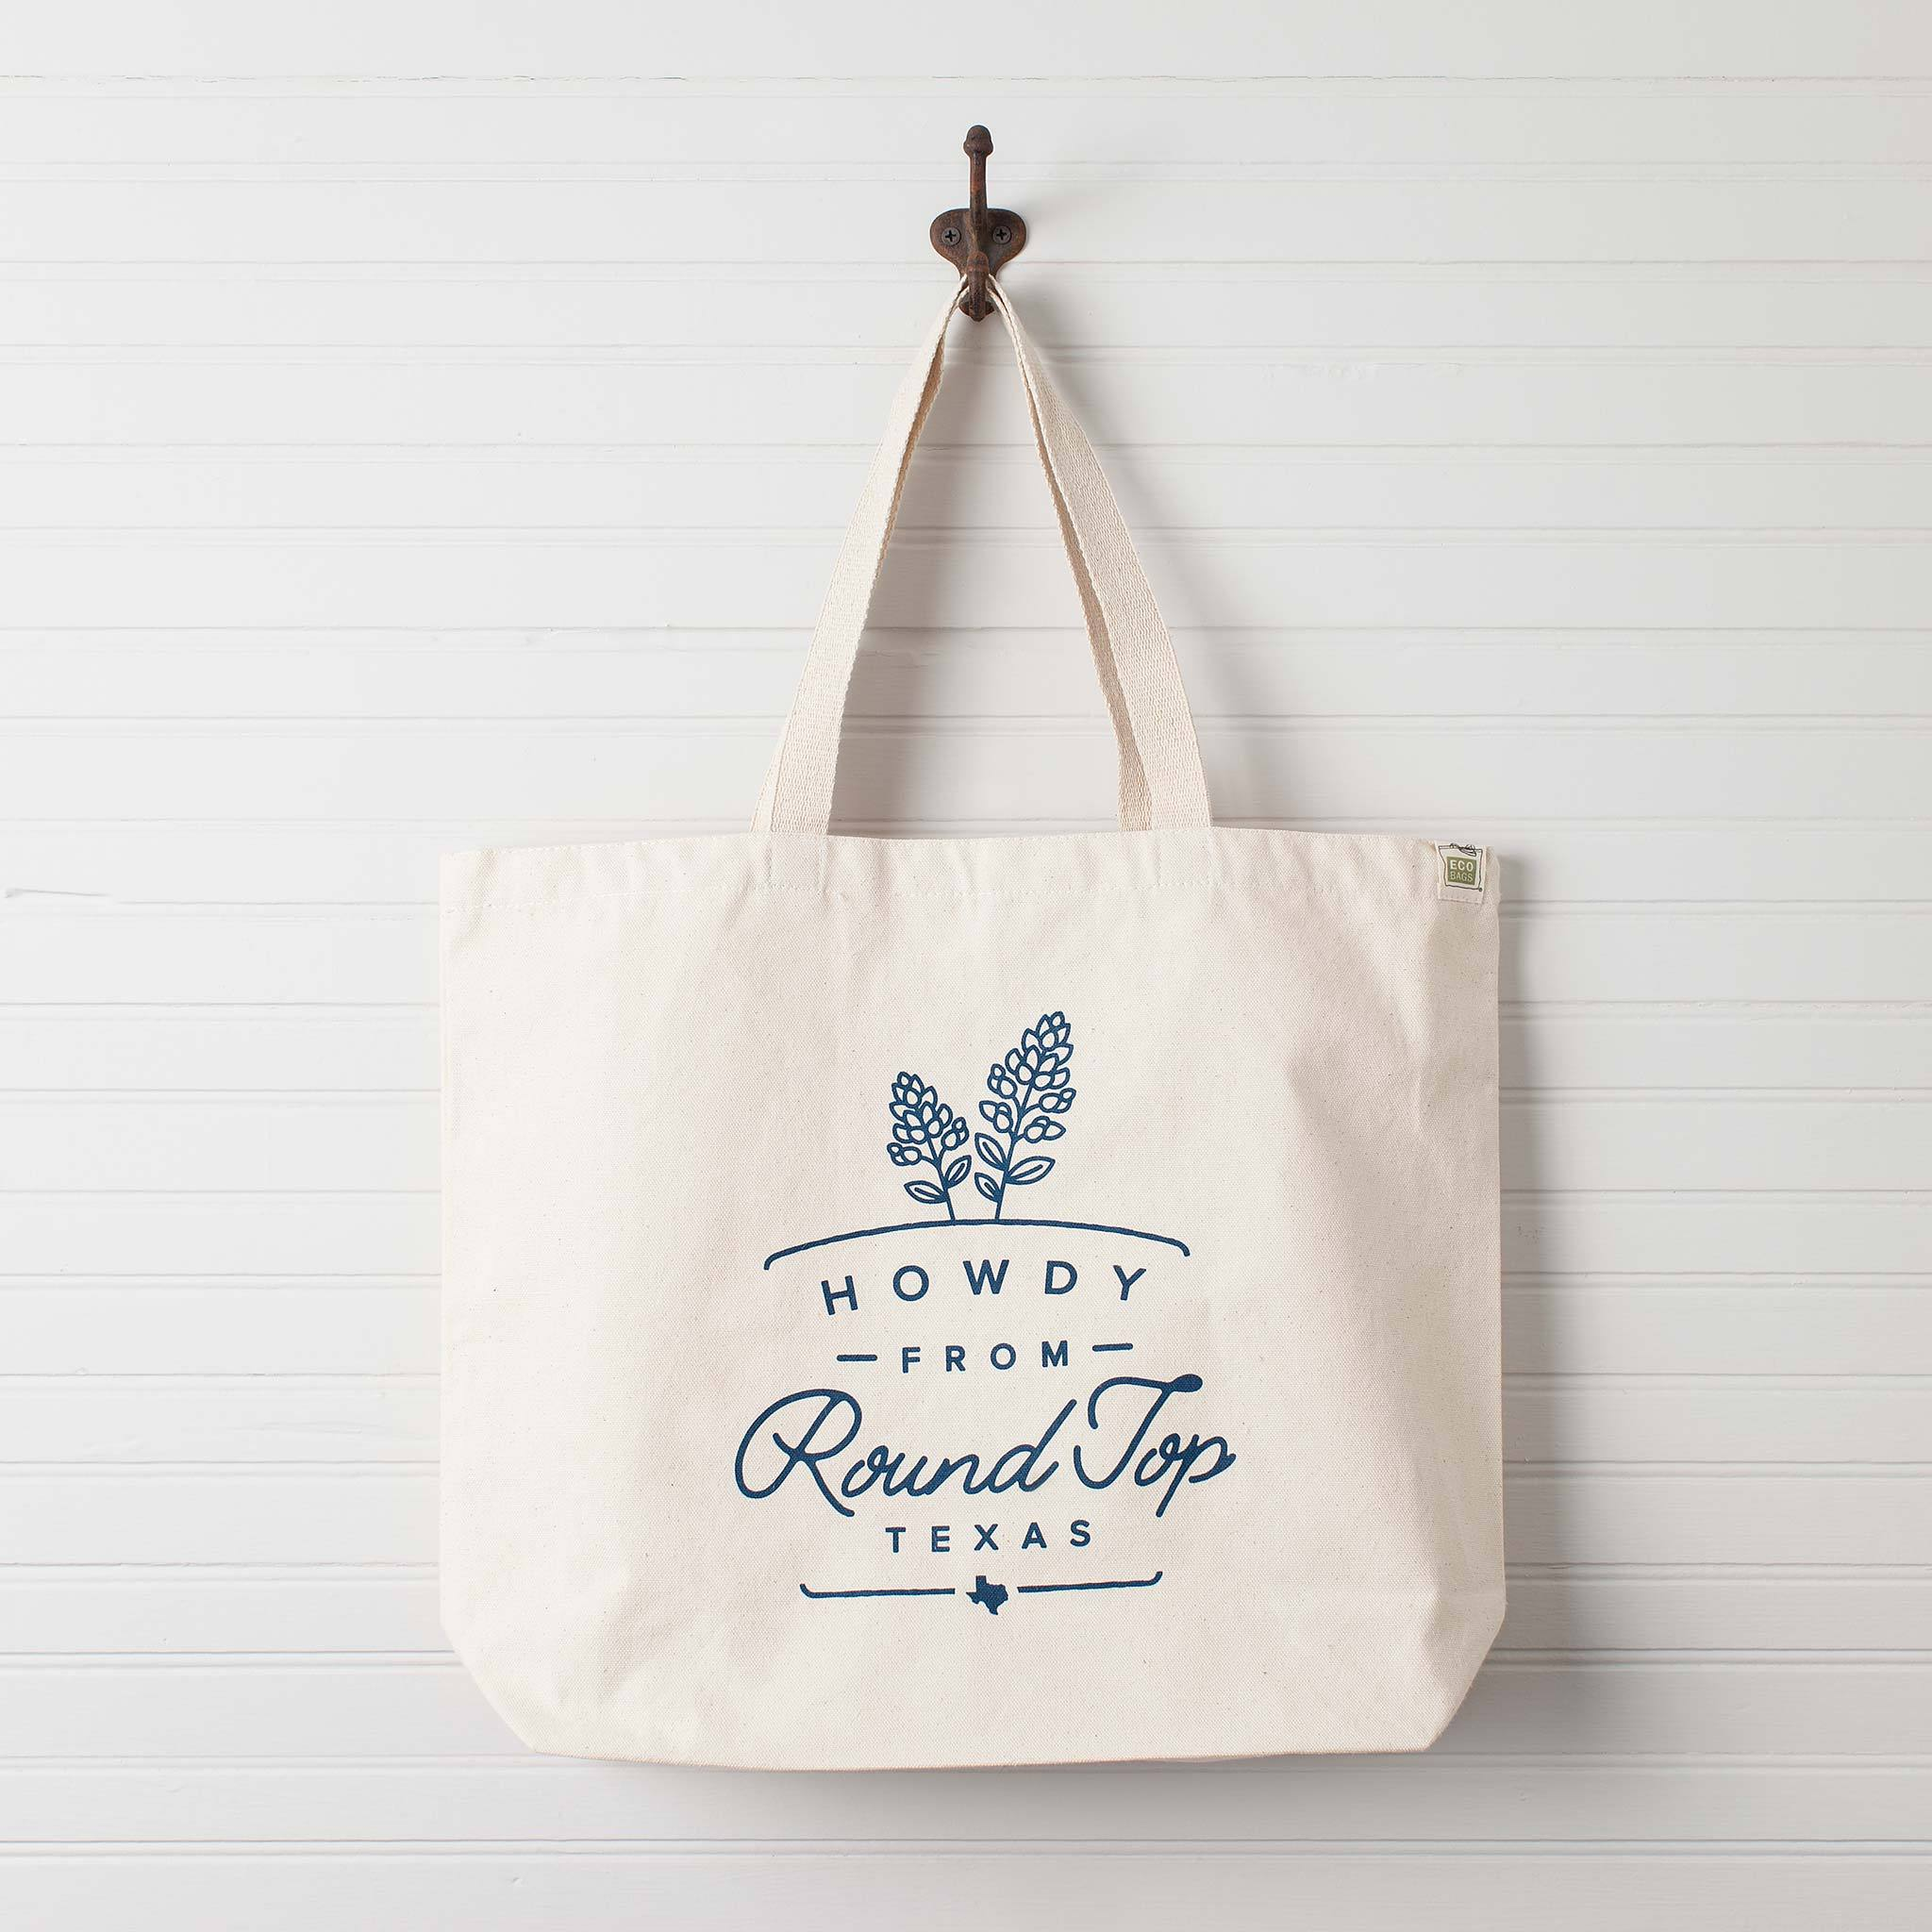 townsend-provisions-howdy-from-round-top-texas-canvas-tote-bag-eco-bags-bluebonnet_1024x1024@2x.jpg